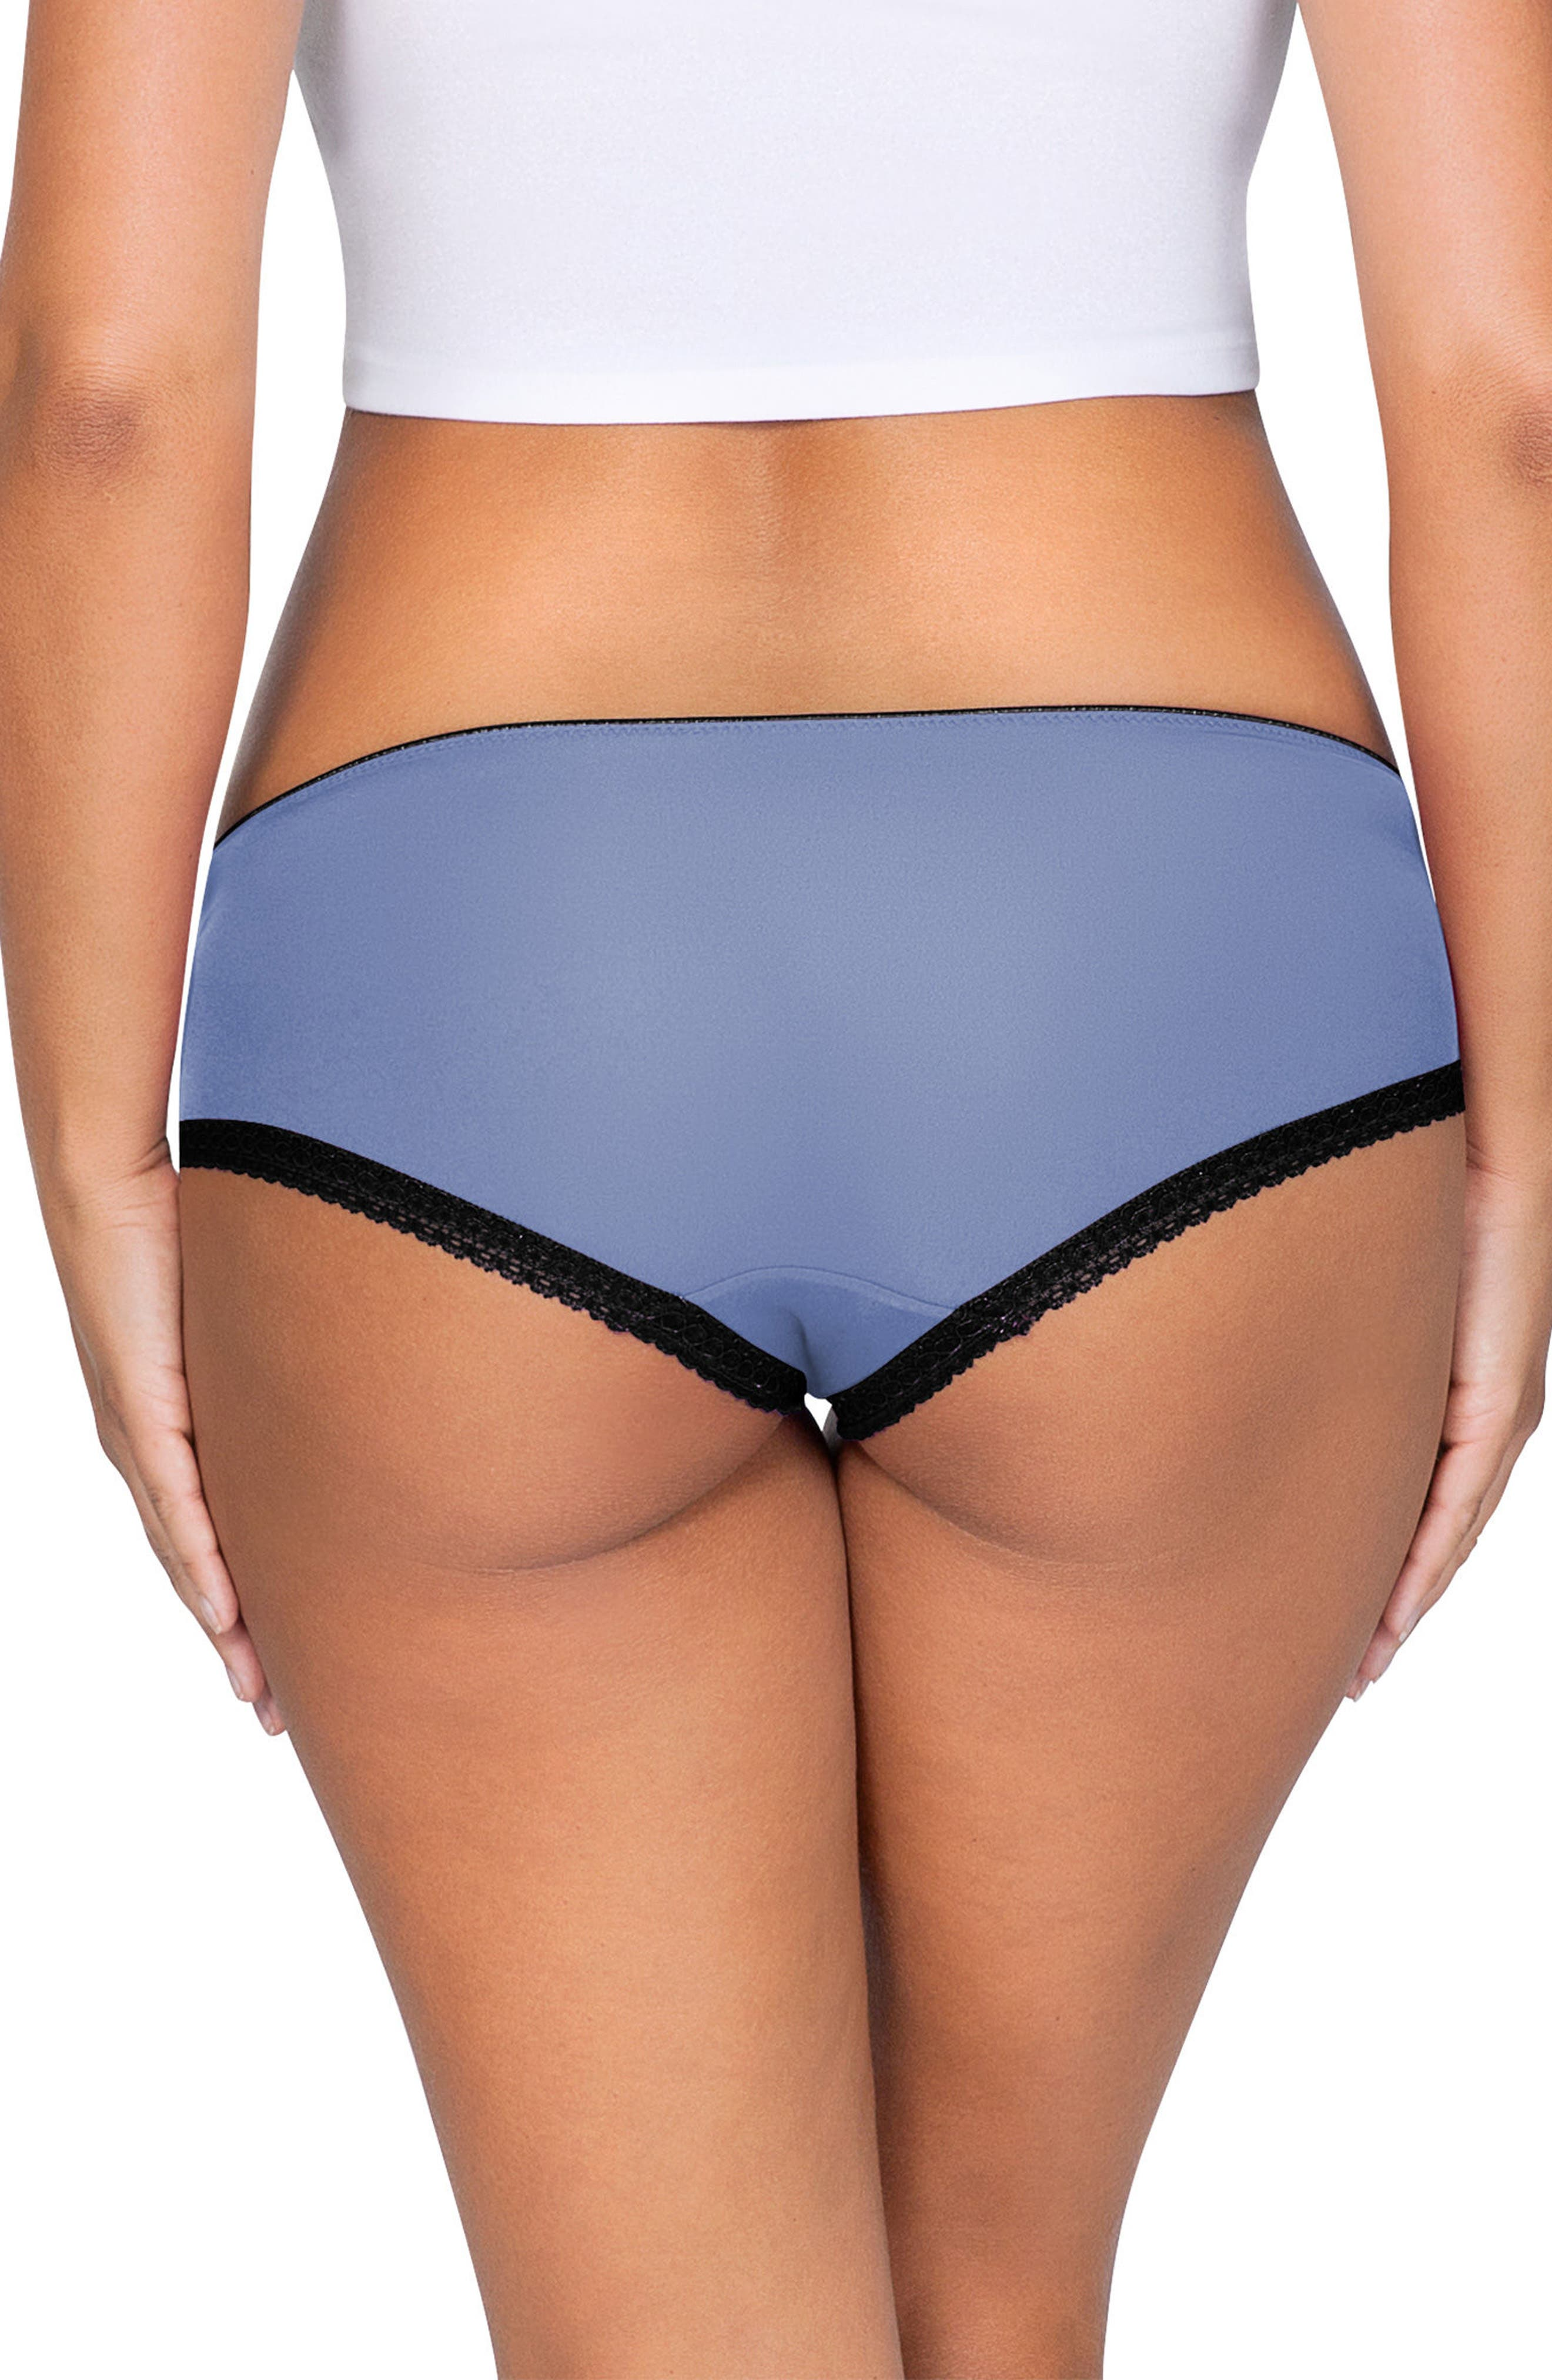 Alternate Image 2  - Parfait Cheeky Hipster Briefs (3 for $33)